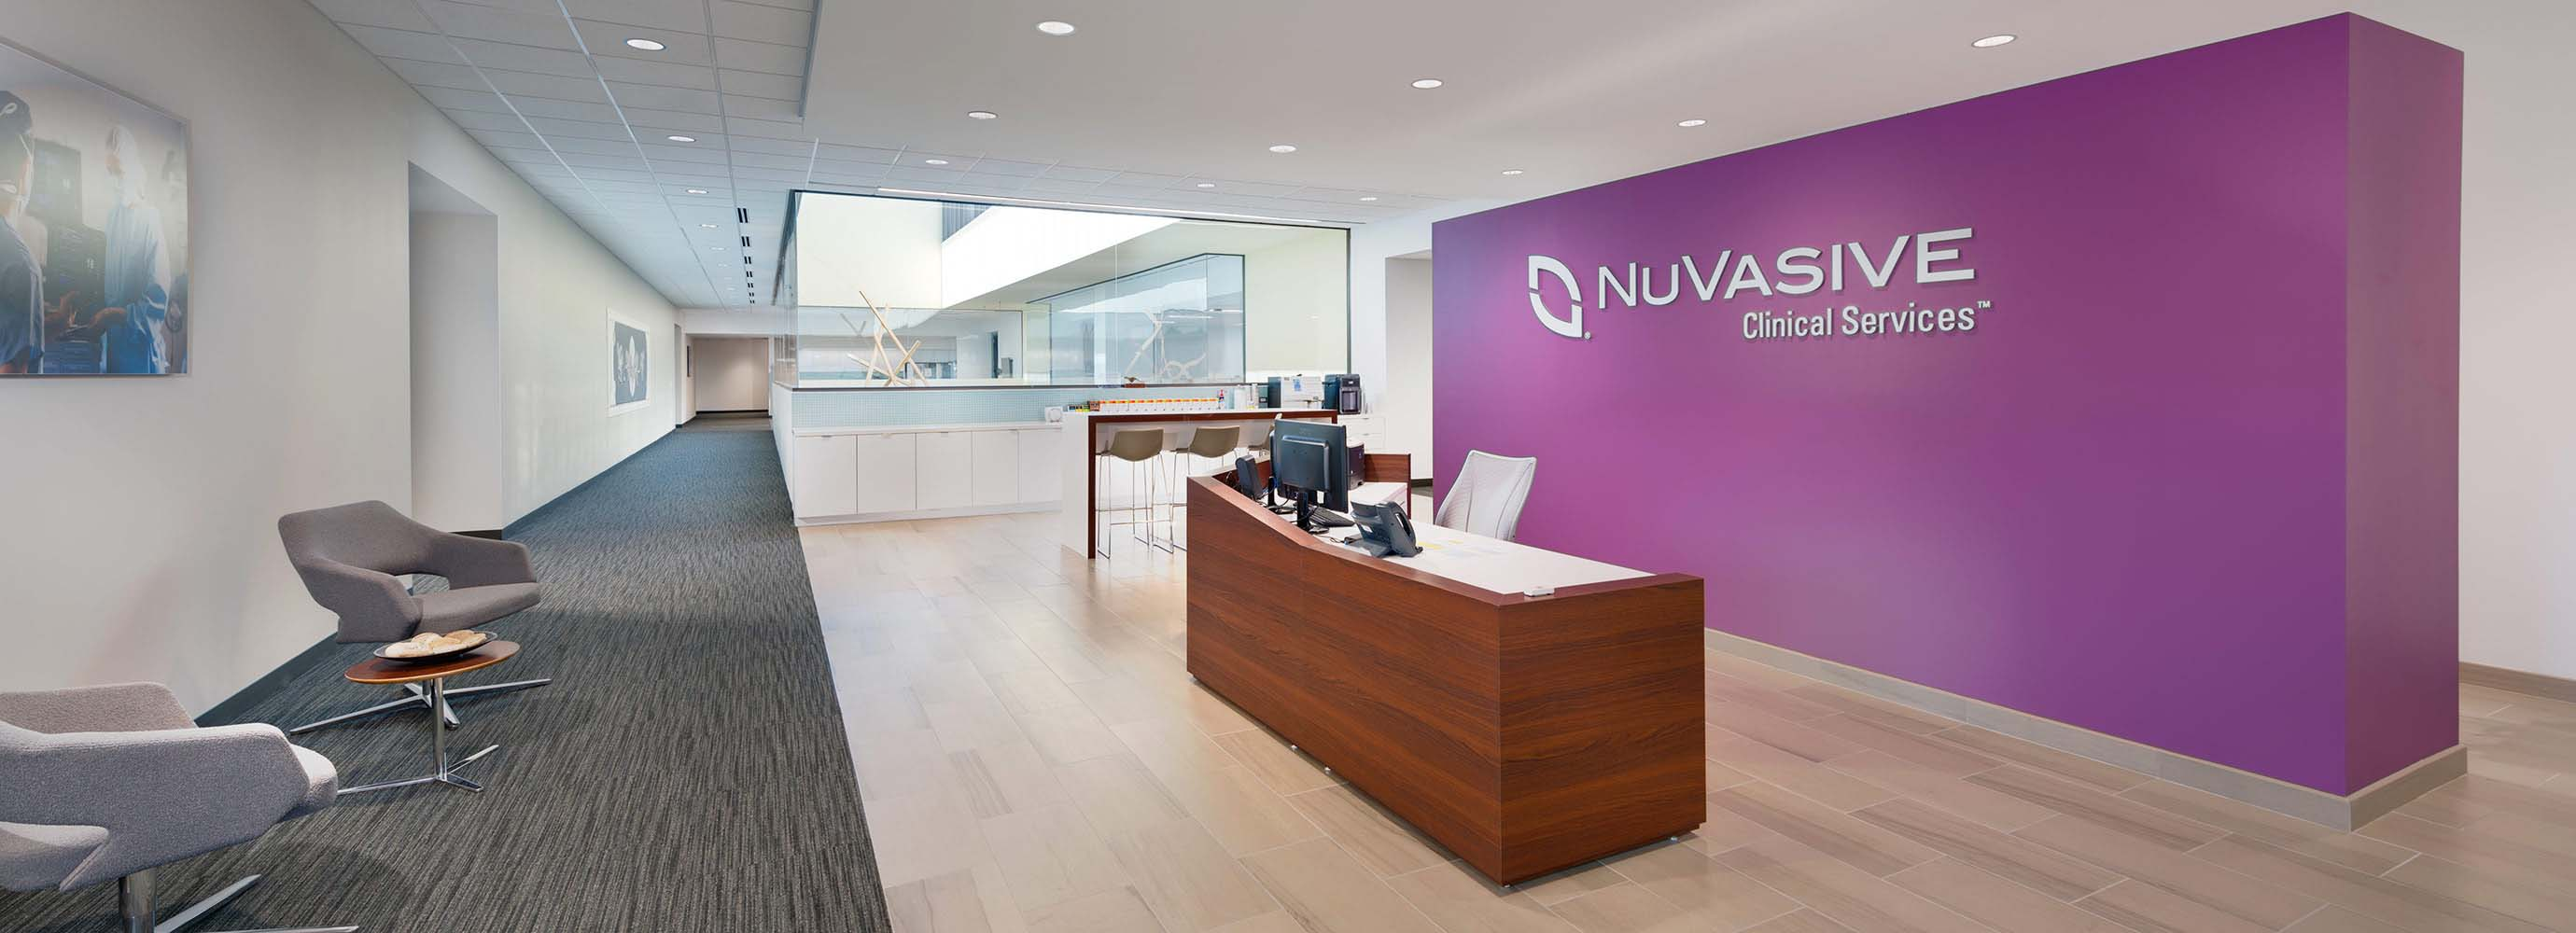 NuVasive Office Fit-Out | Project Gallery | Harkins Builders